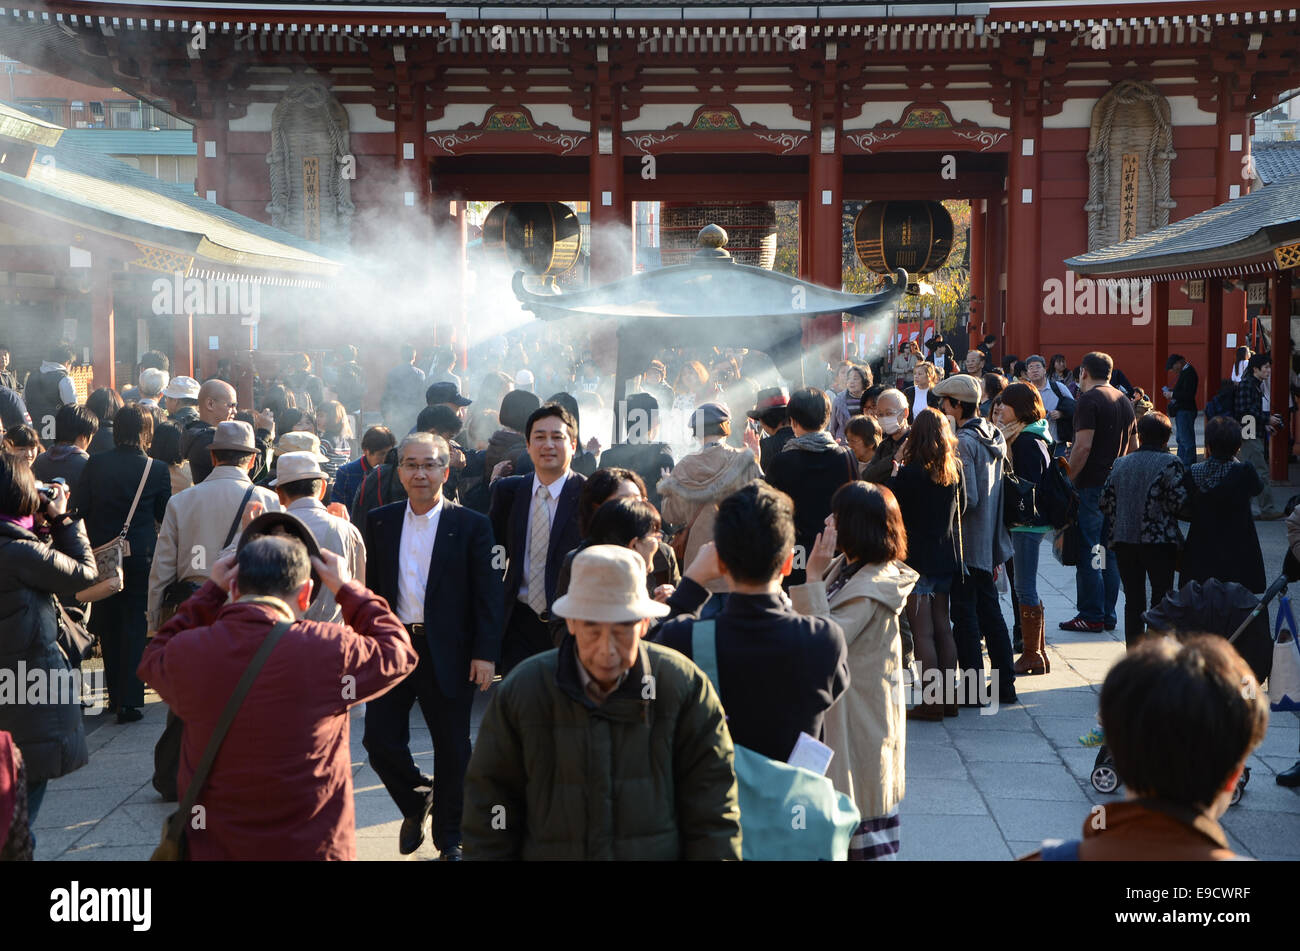 TOKYO, JAPAN - NOV 21: Buddhists gather around a fire to light incense and pray at Sensoji Temple on November 21, - Stock Image